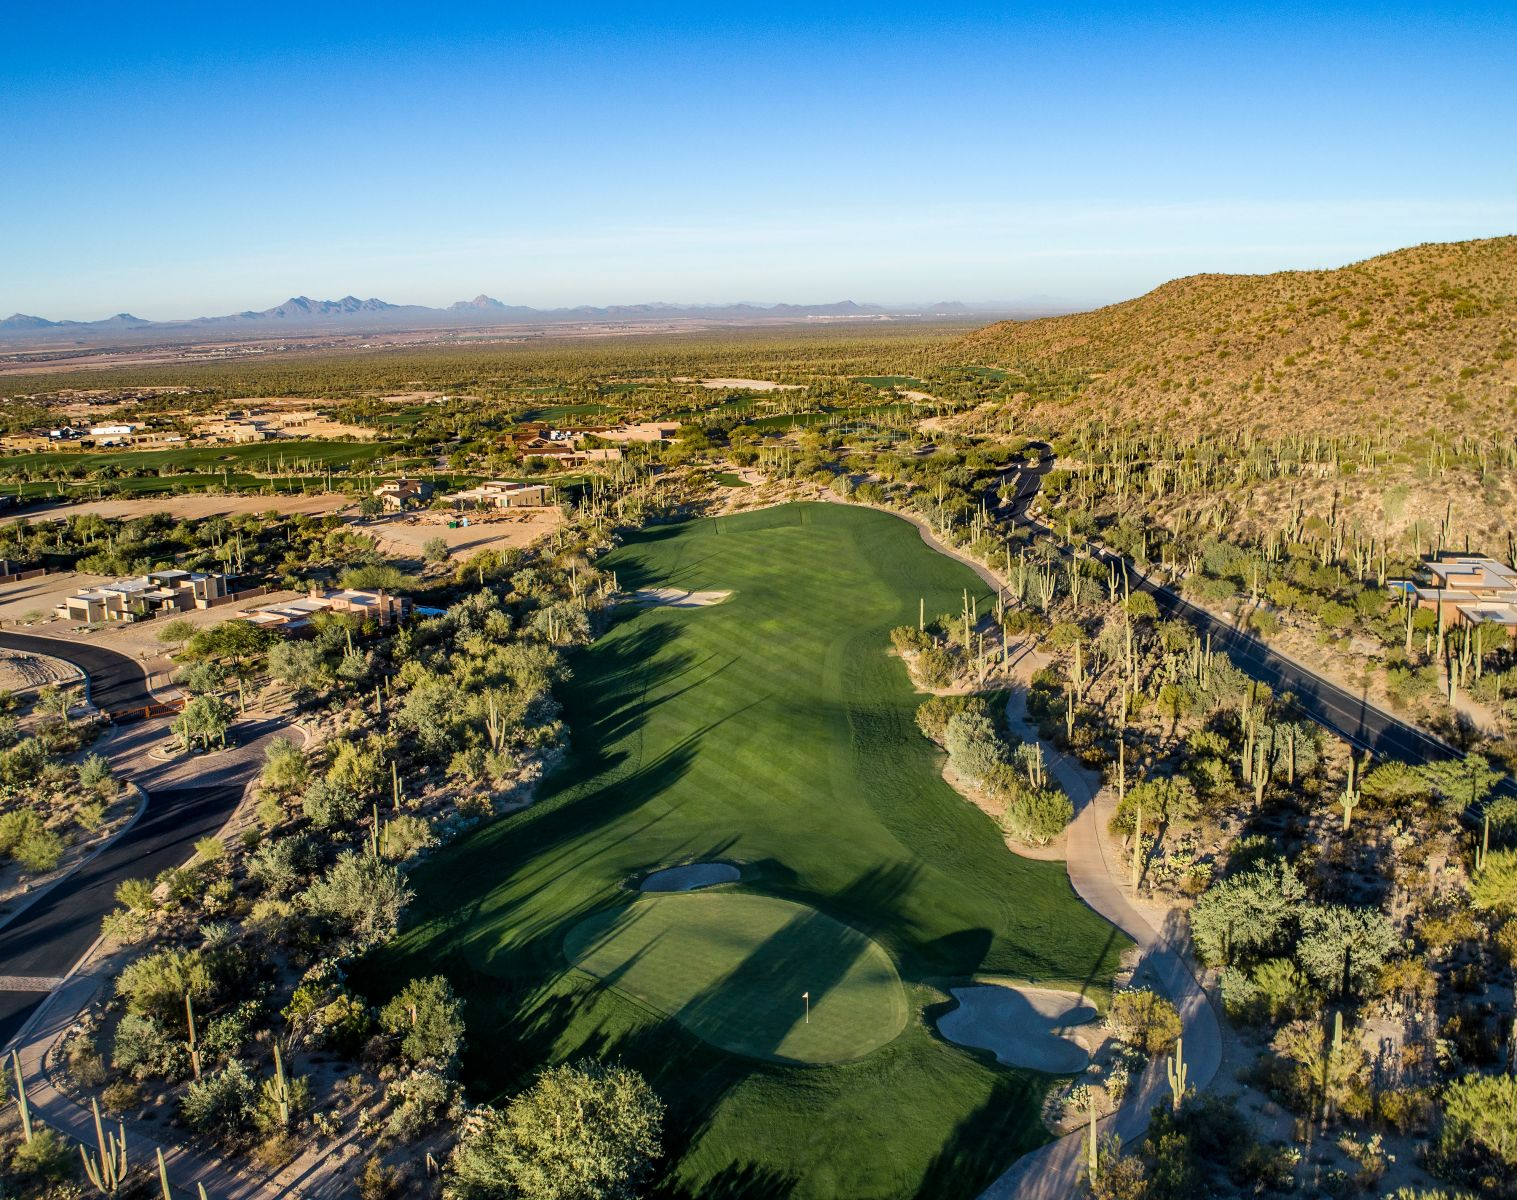 Aerial view of hole 1 on the Wild Burro course